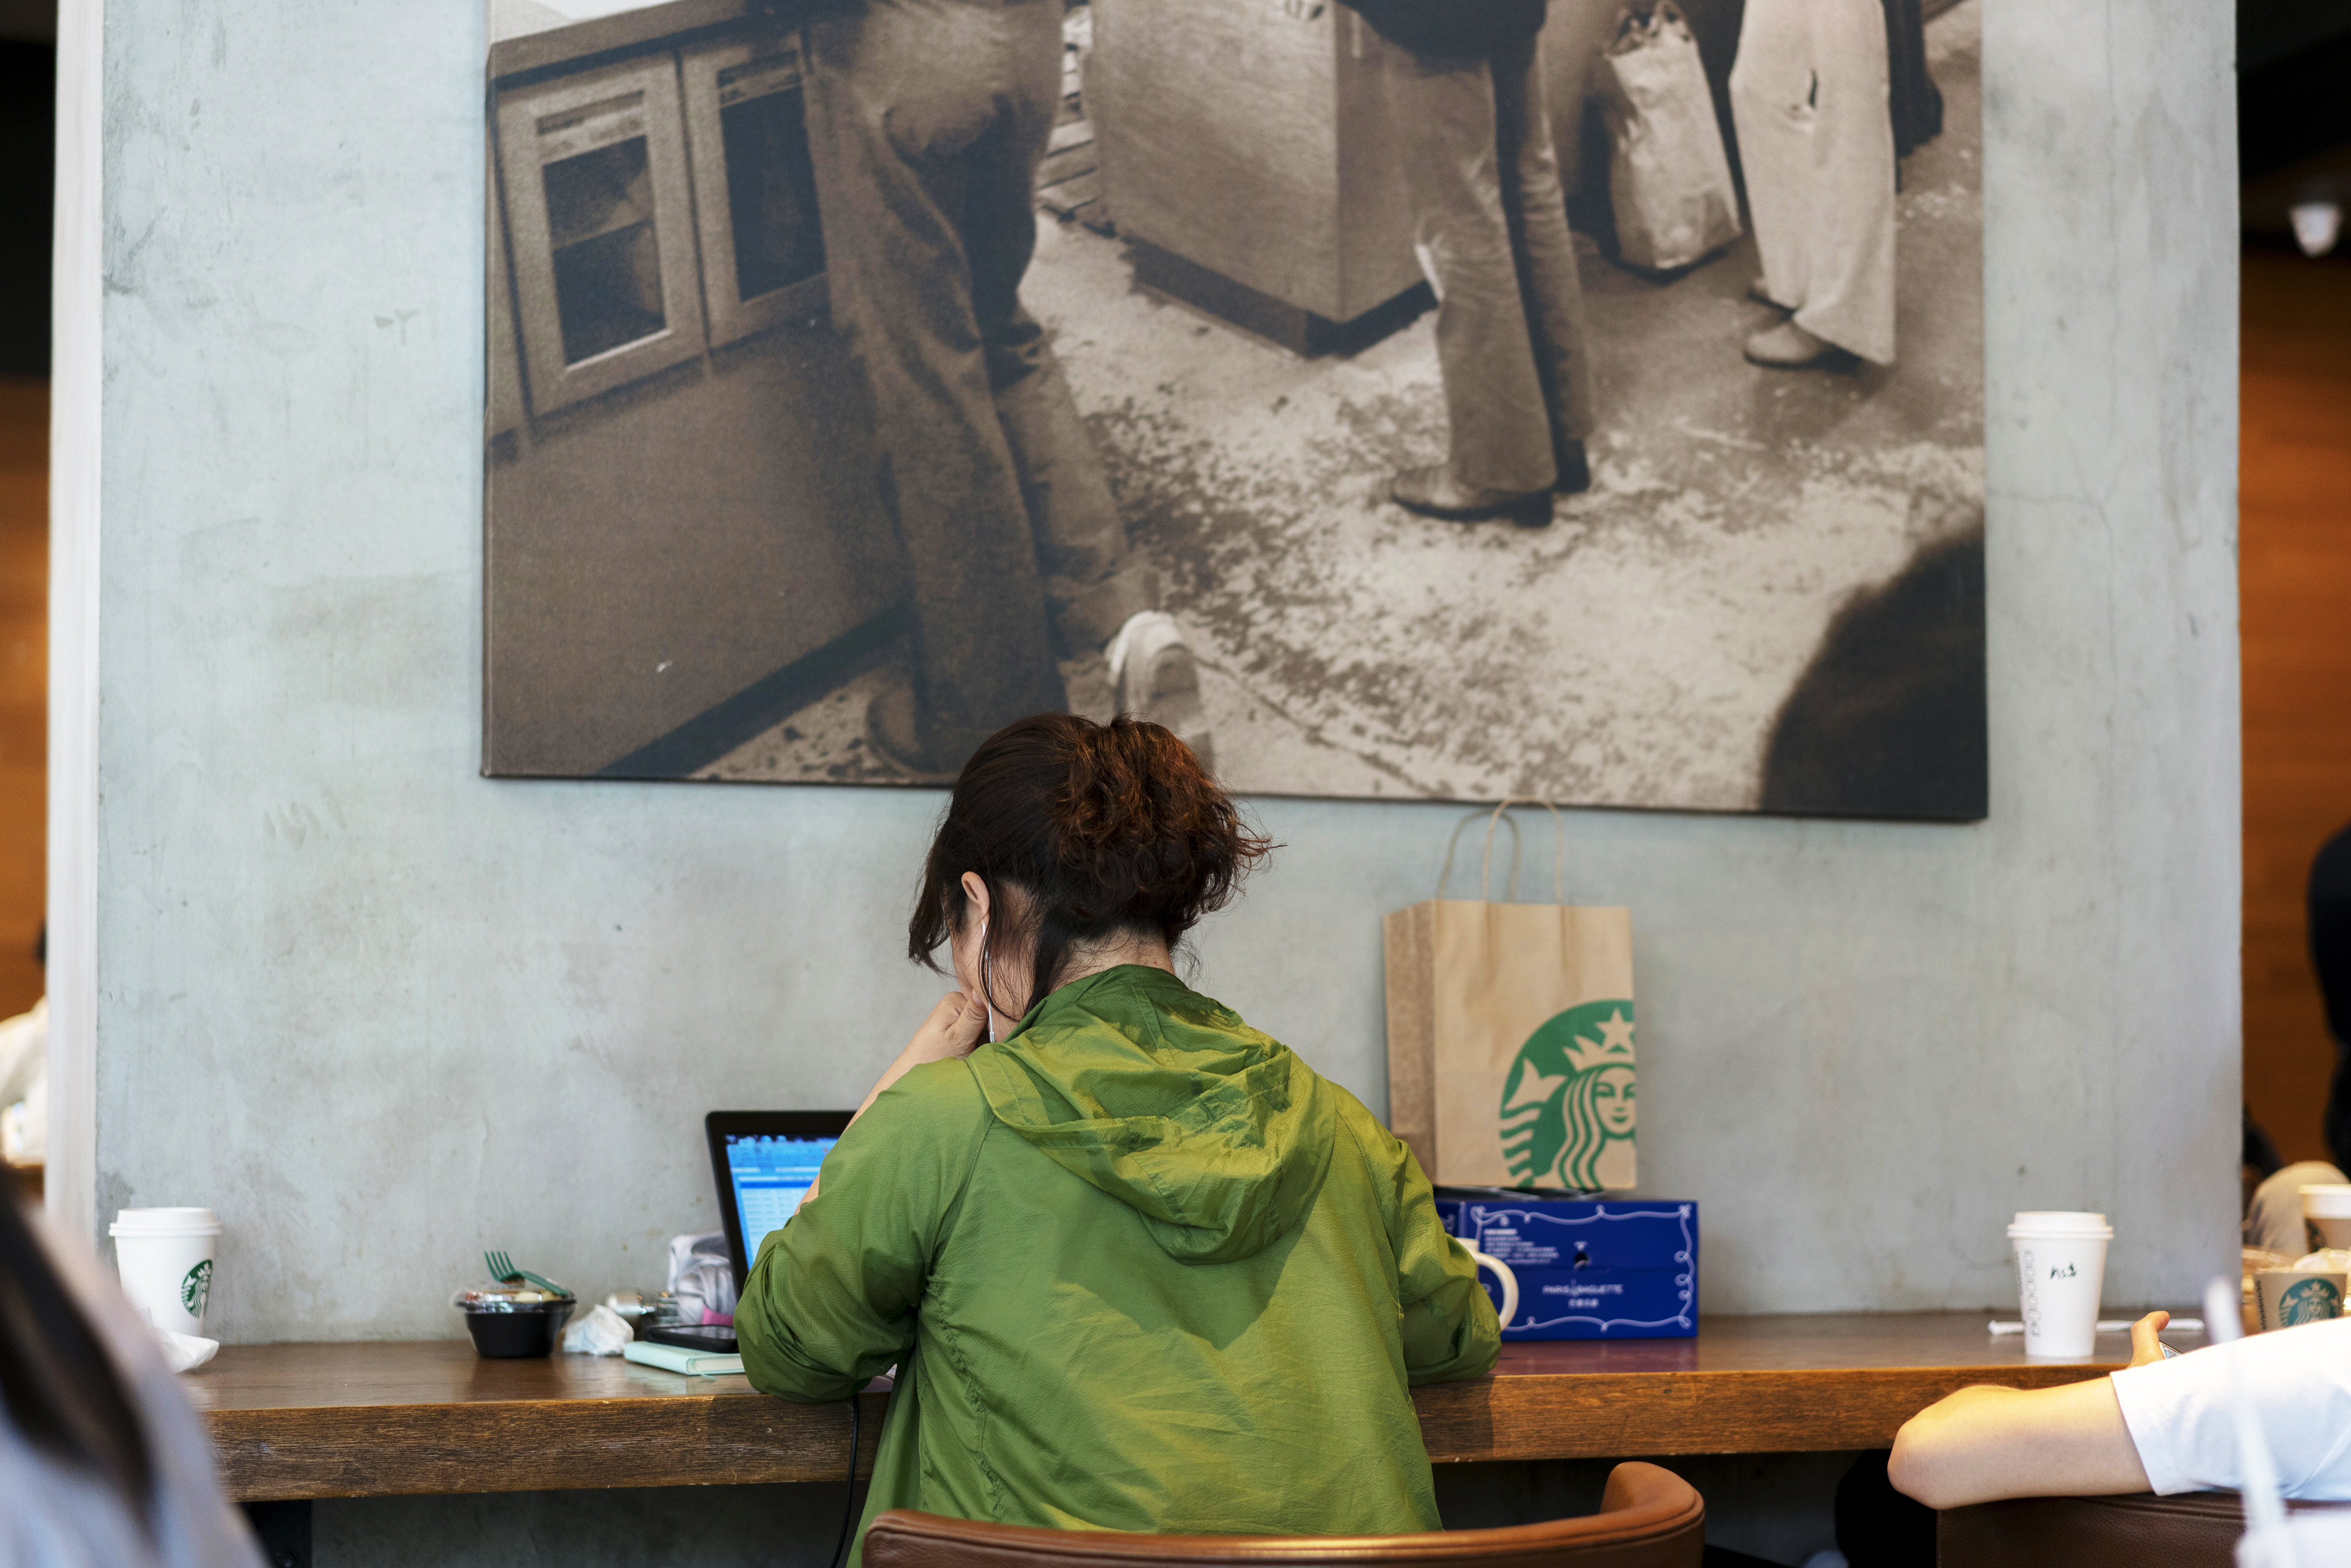 A girl is working on laptop in a Starbucks coffee shop. In